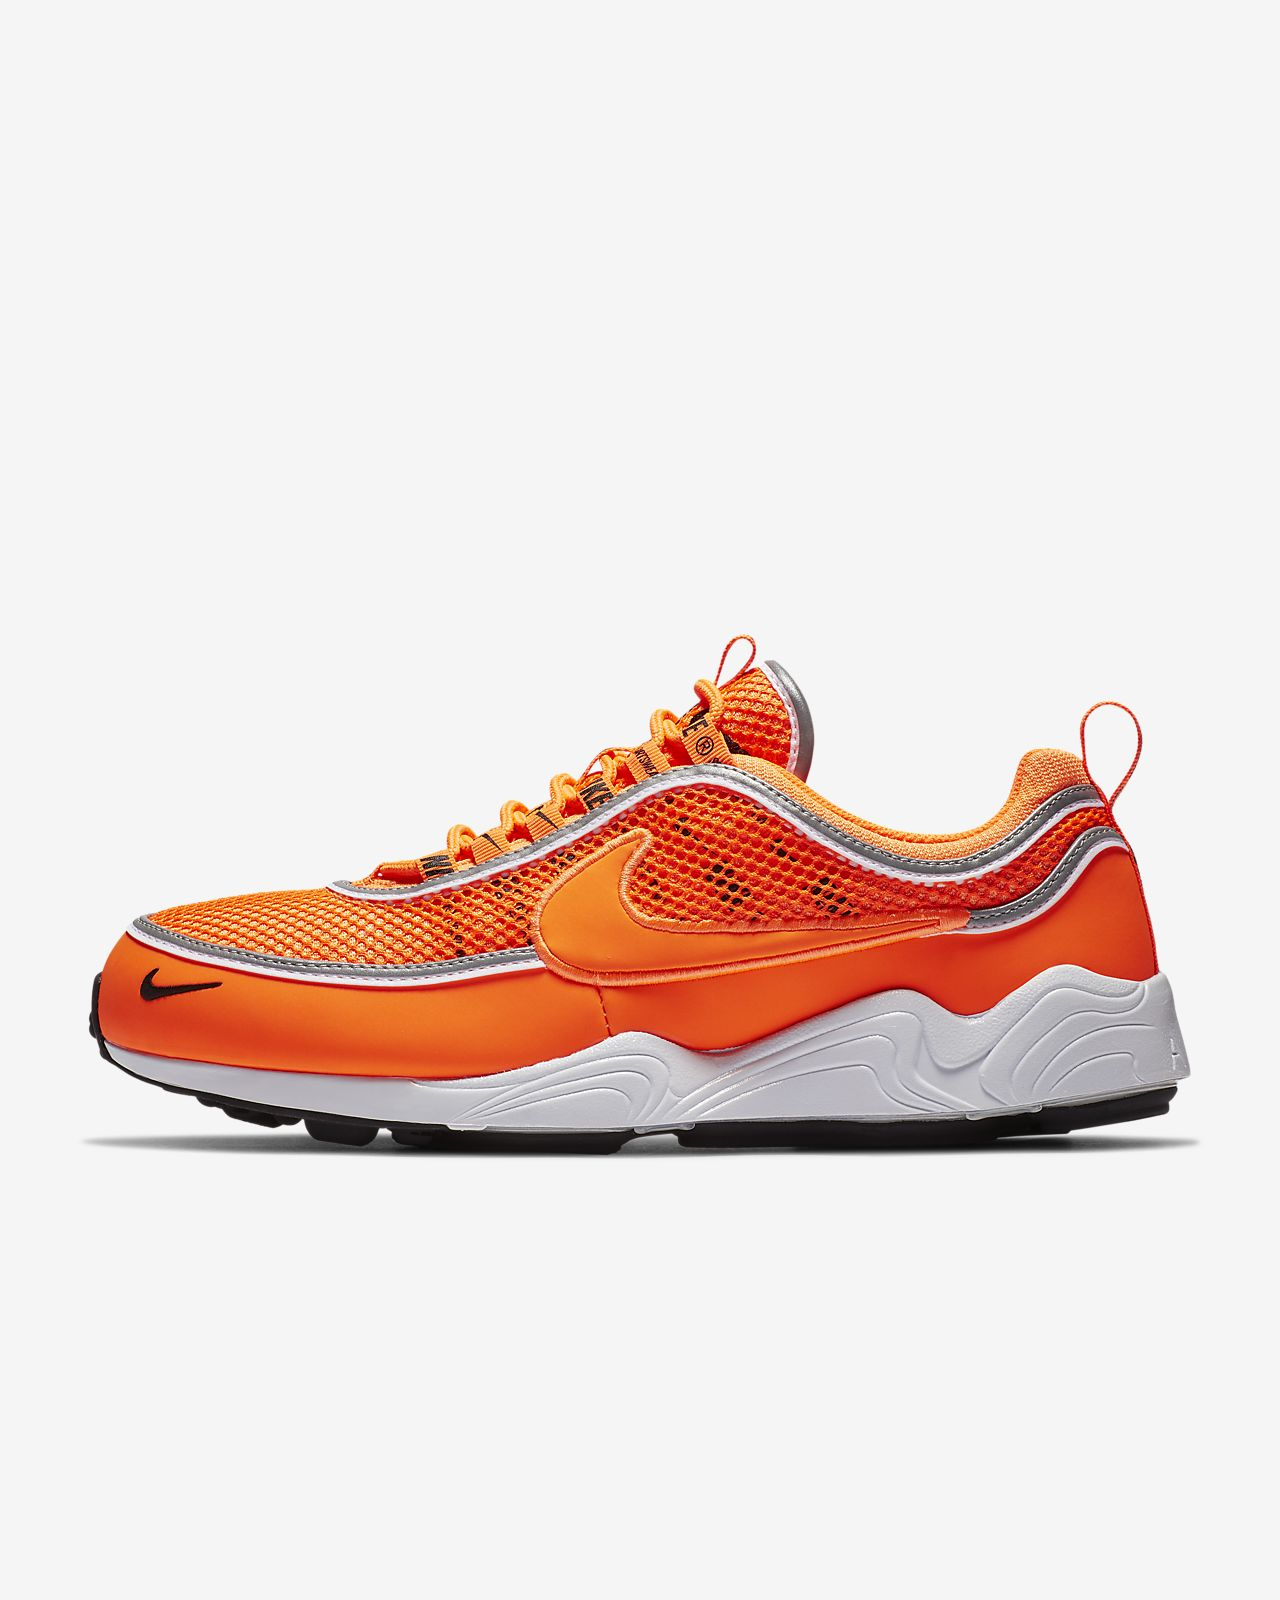 3eba0ab937ecc Nike Air Zoom Spiridon 16 SE Men s Shoe. Nike.com